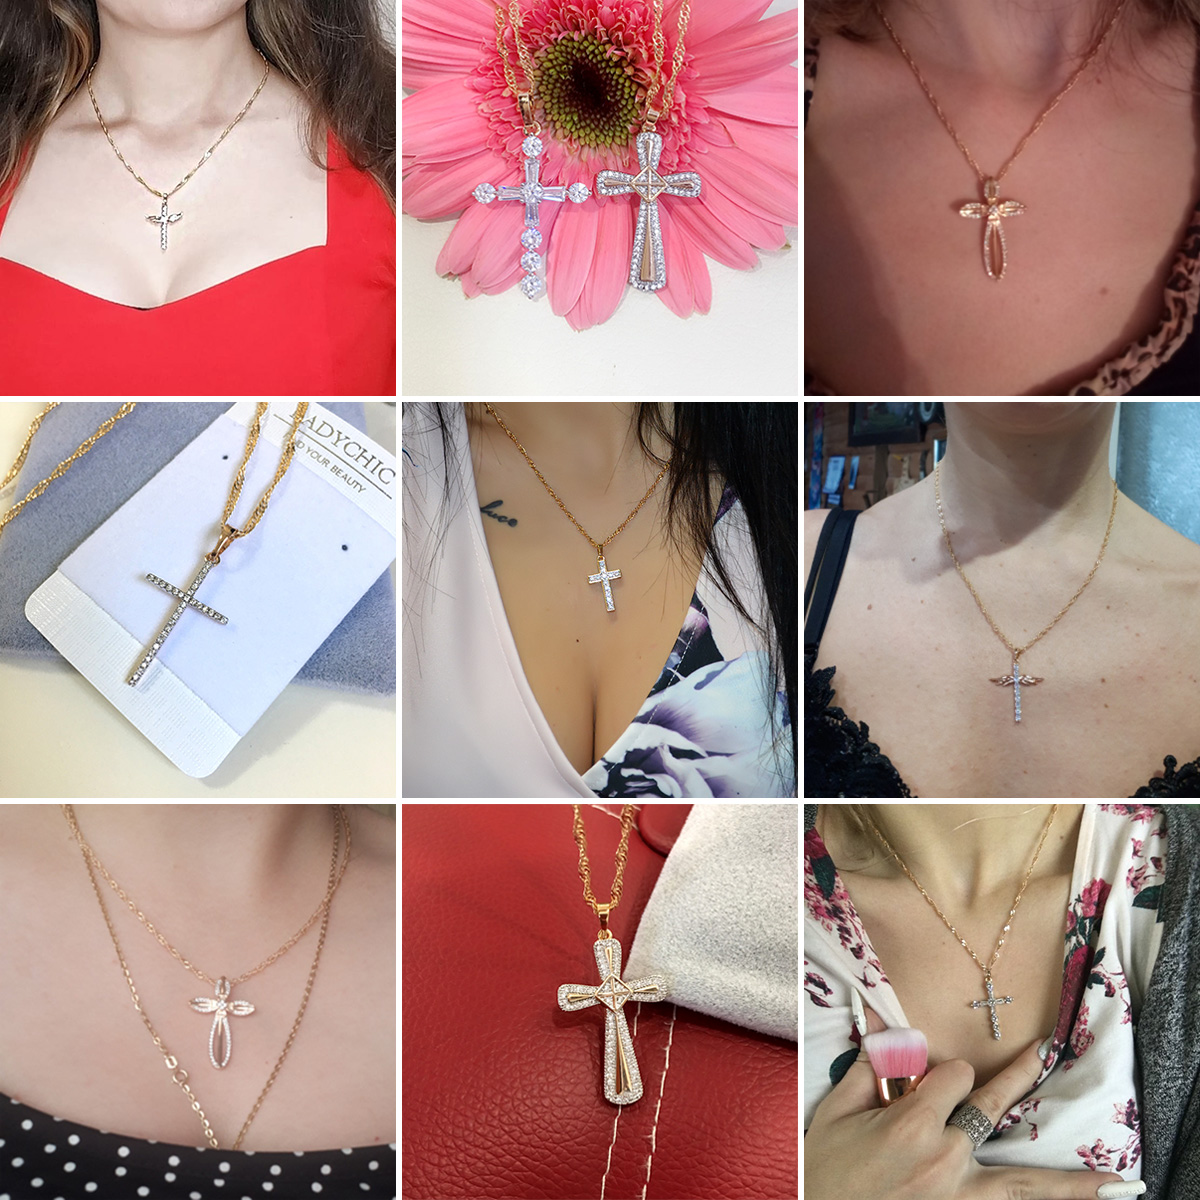 Elegance Gold Color Cross Pendant Necklaces for Women Men Trendy Classic Christian Jesus Crystal Necklace Jewelry Gift Wholesale 4